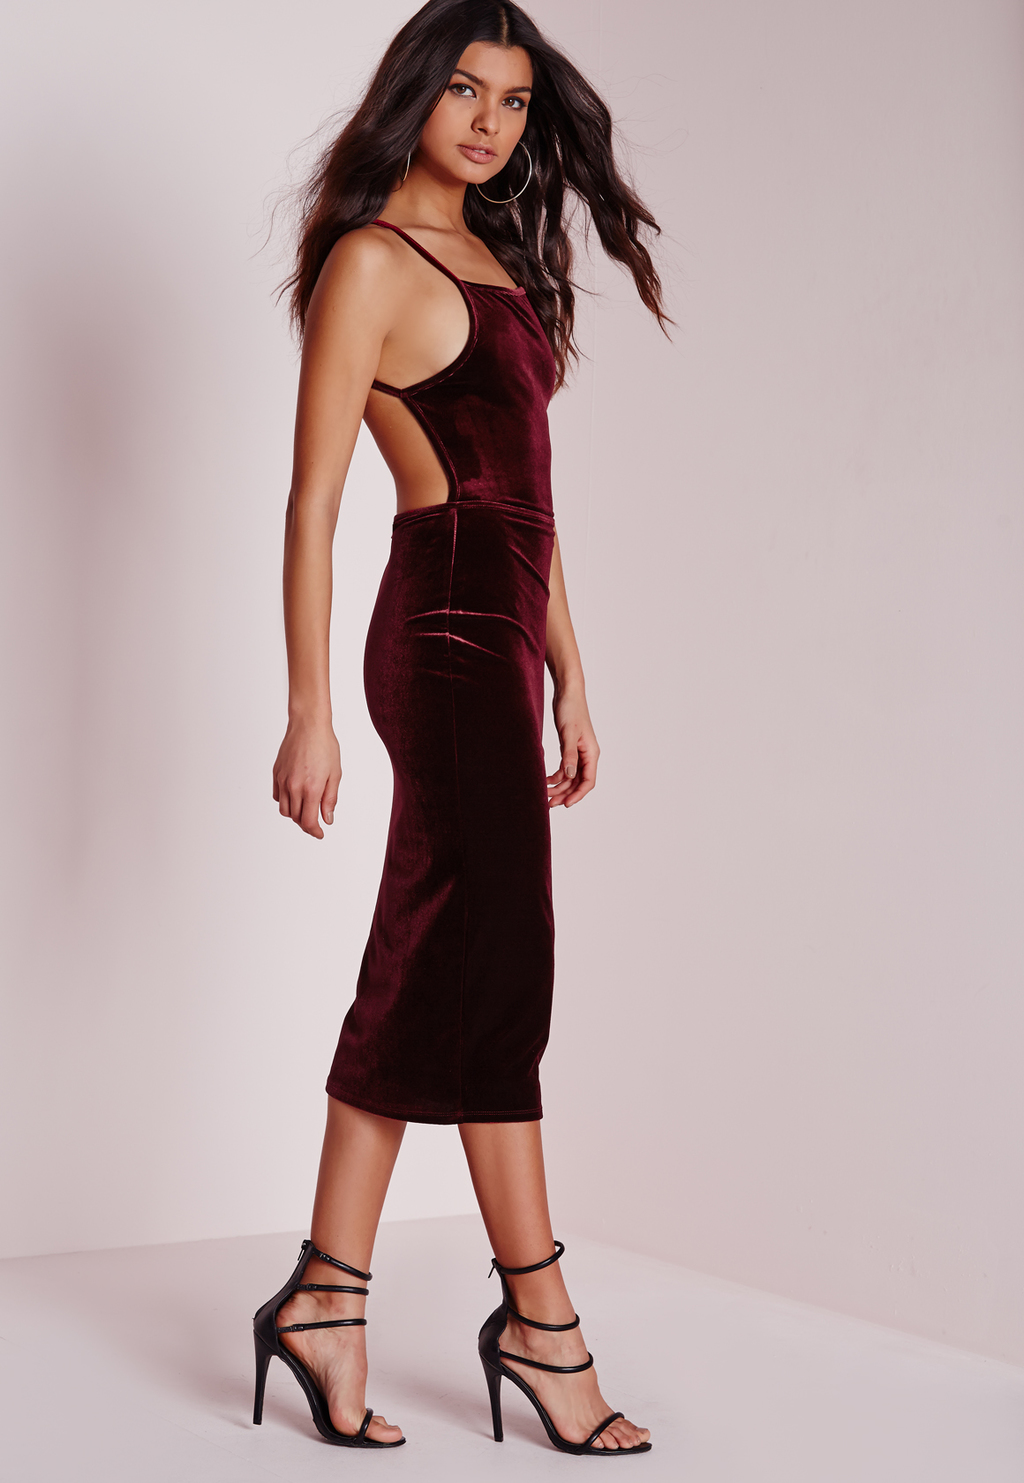 Tall Open Back Bodycon Dress Burgundy, Burgundy - length: calf length; sleeve style: spaghetti straps; fit: tight; pattern: plain; style: bodycon; back detail: low cut/open back; predominant colour: burgundy; occasions: evening; neckline: scoop; fibres: polyester/polyamide - stretch; sleeve length: sleeveless; pattern type: fabric; texture group: velvet/fabrics with pile; season: a/w 2015